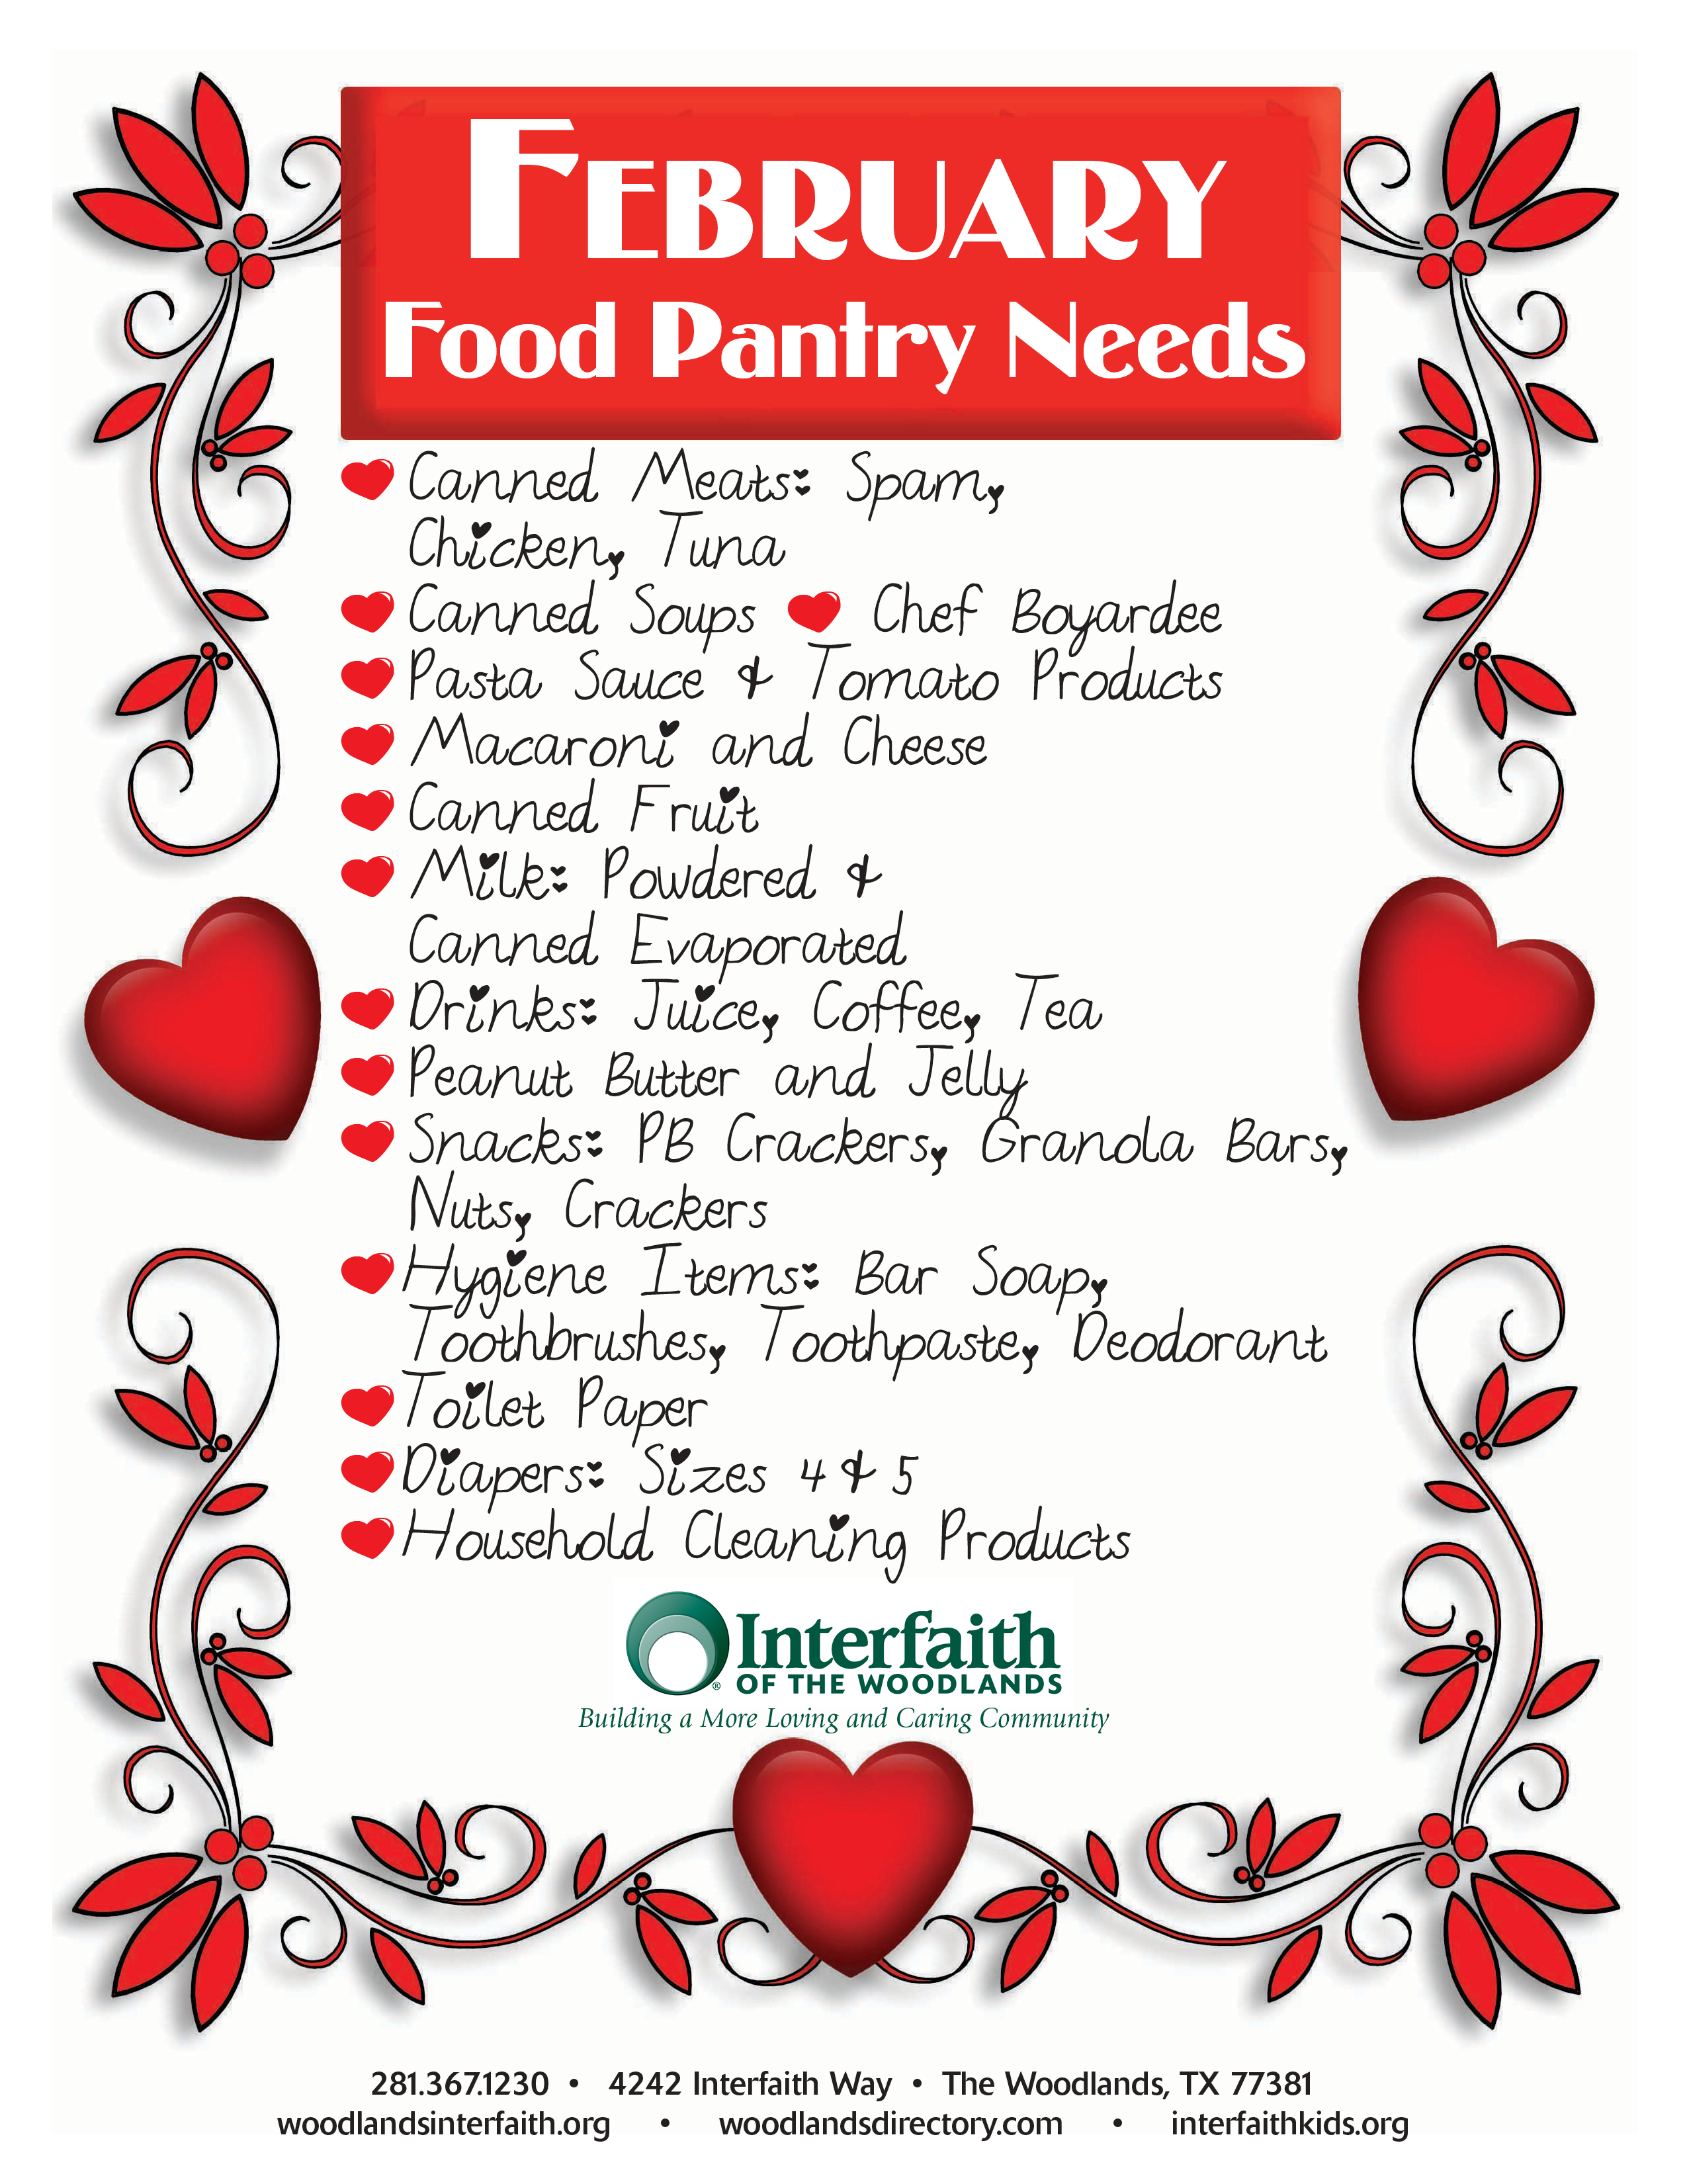 Food Pantry Needs February Interfaith Of The Woodlands